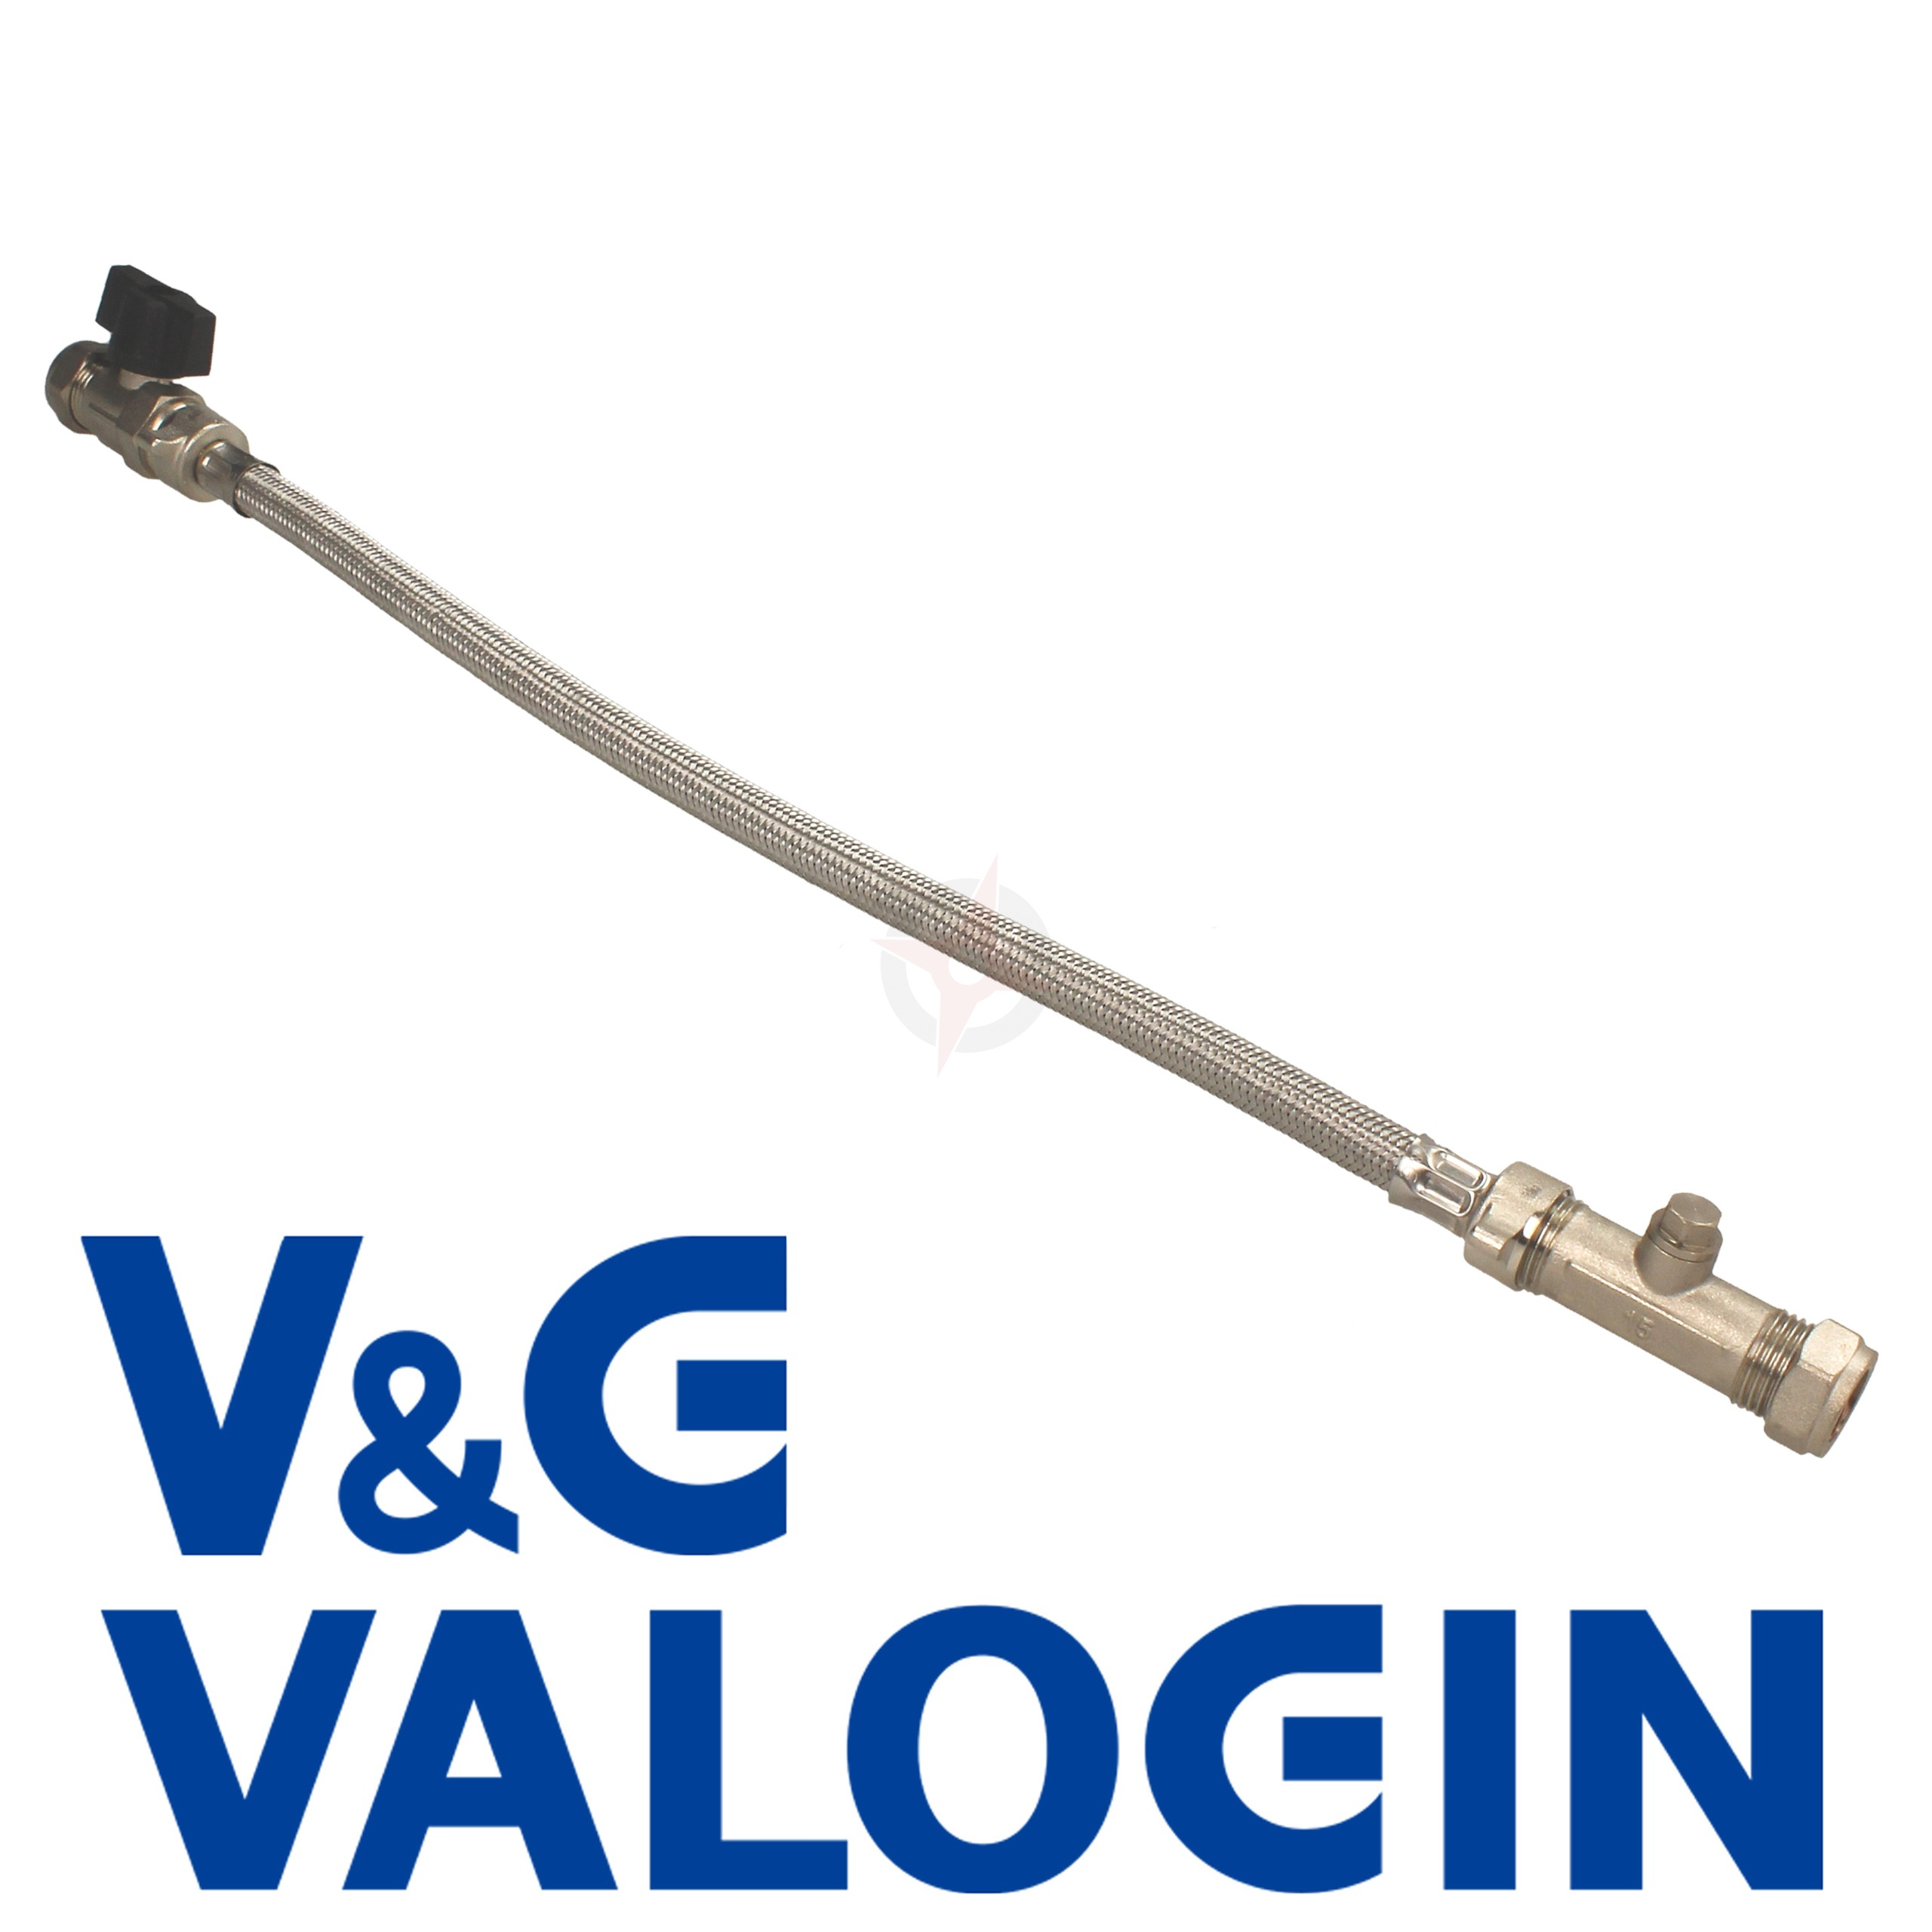 V&G Standard 15mm Compression Straight Filling Loop